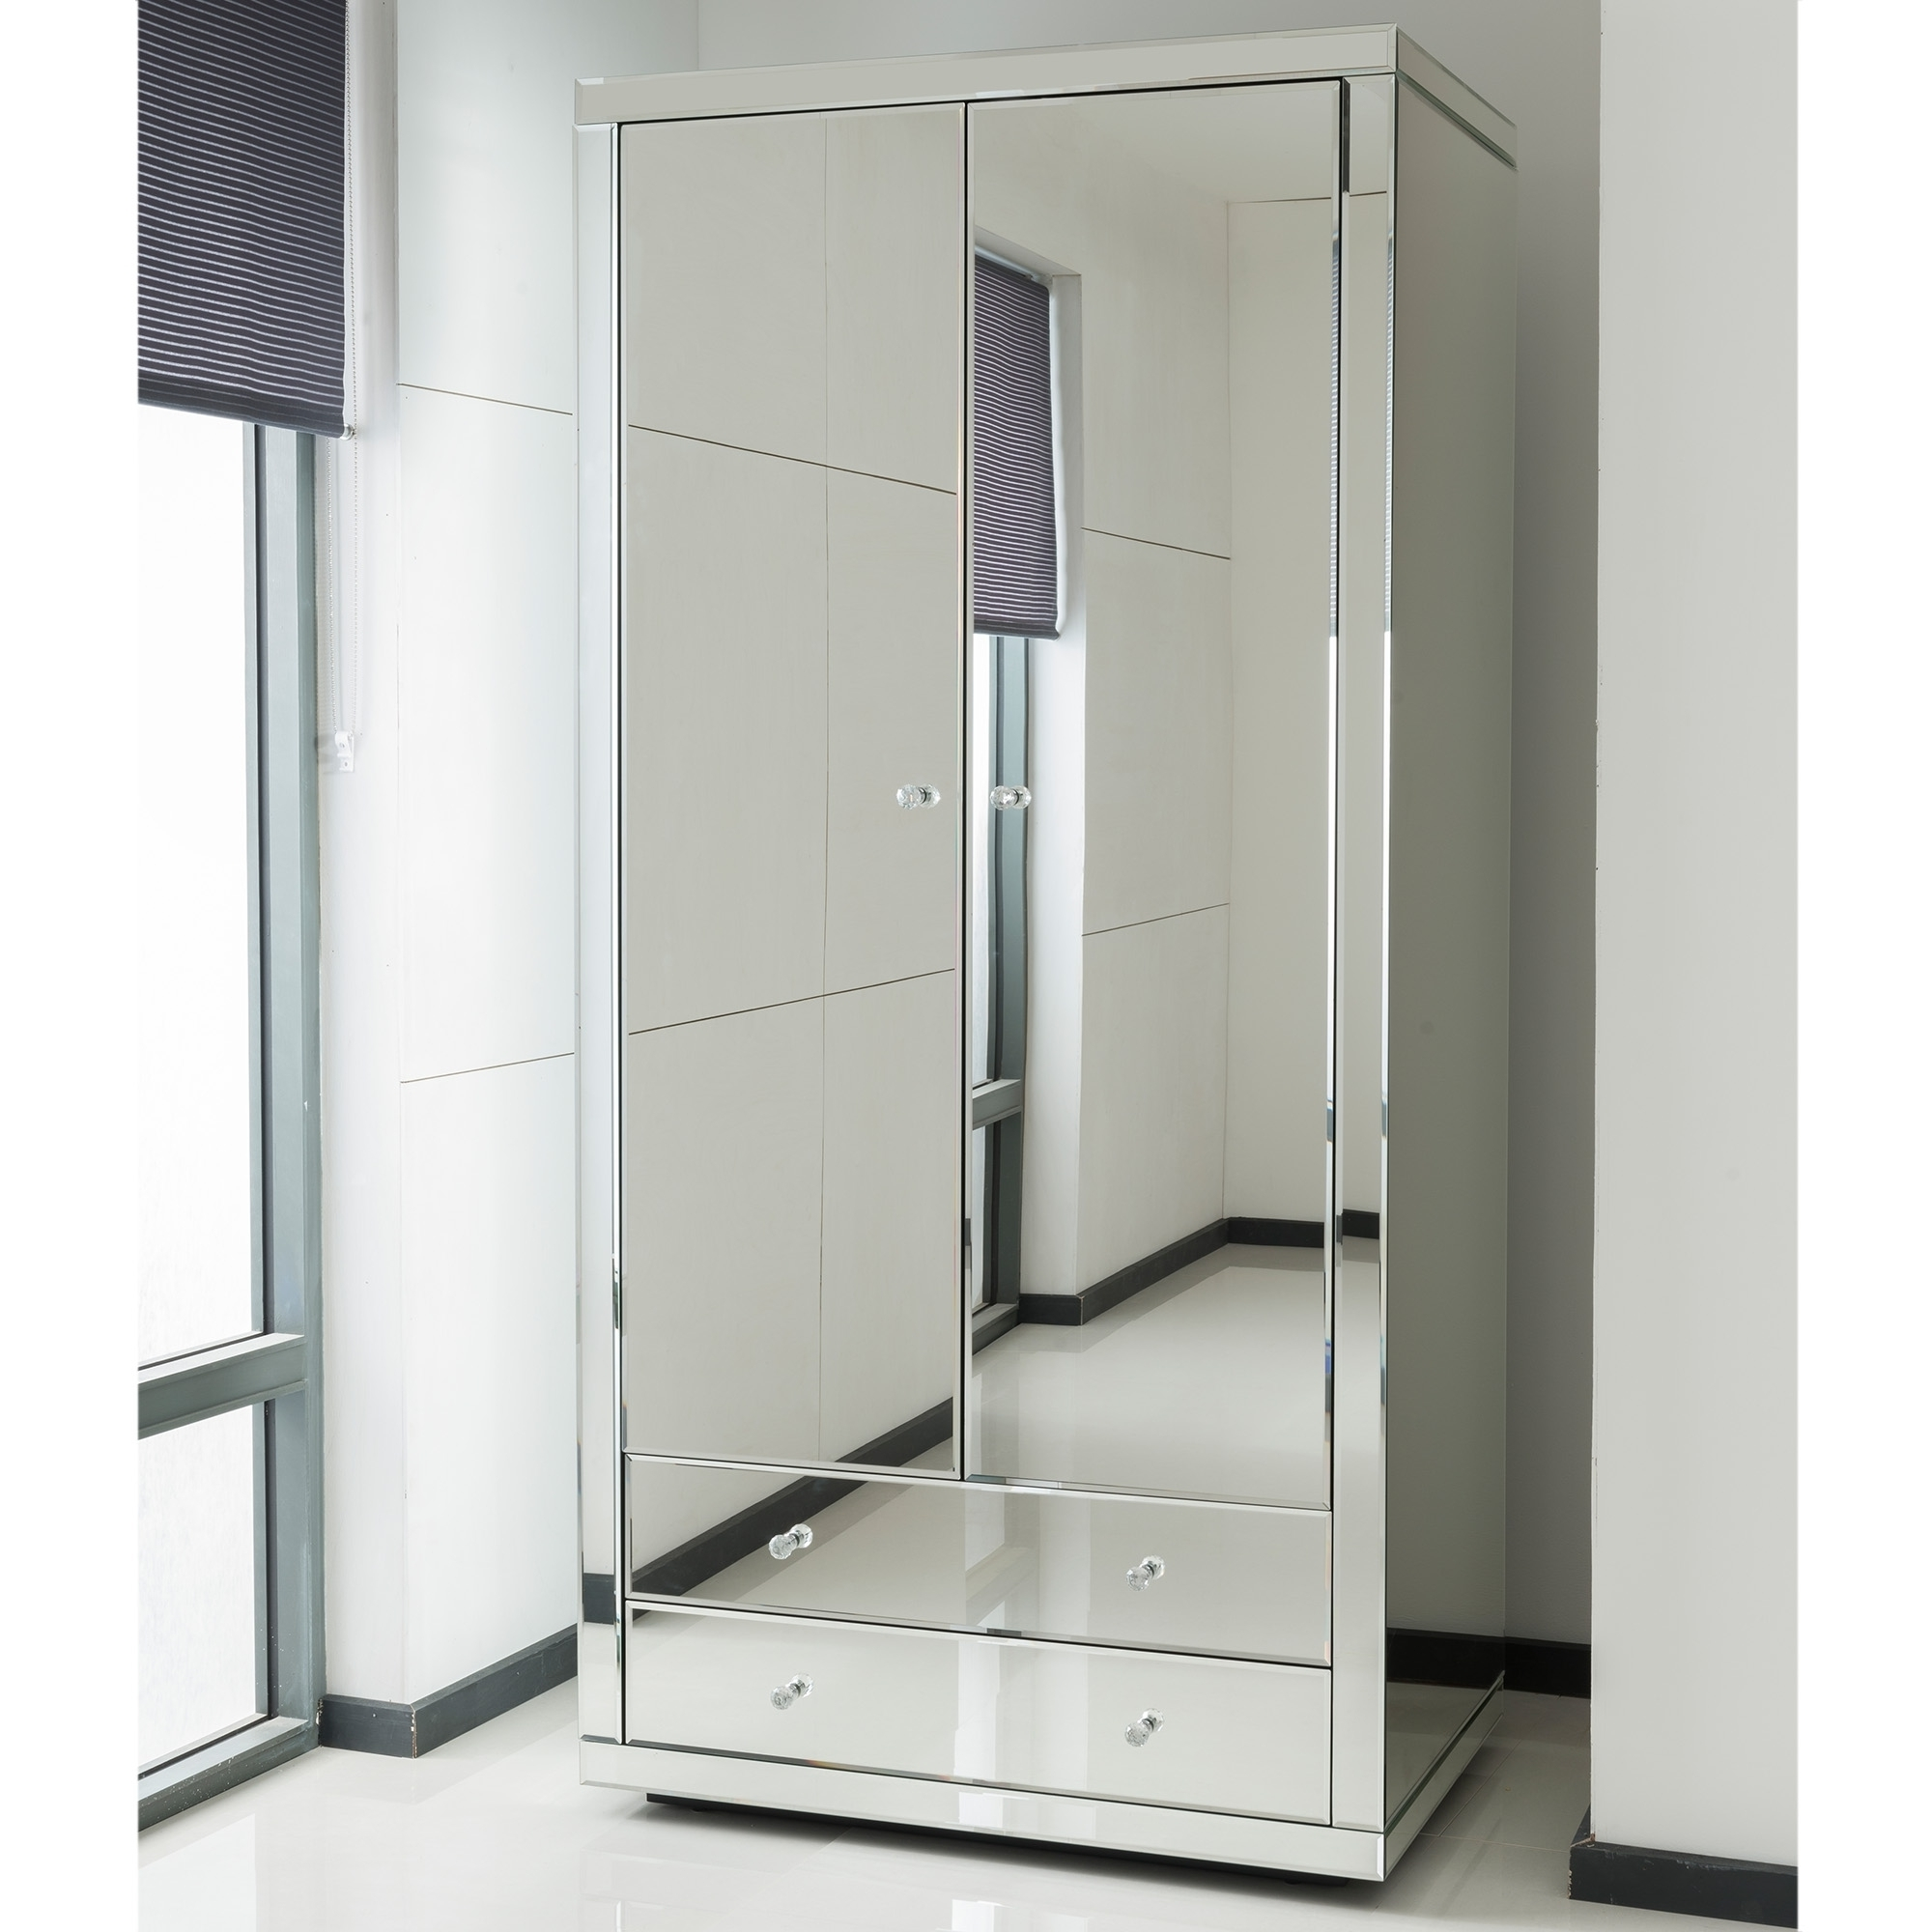 Most Recently Released 3 Door Mirrored Wardrobe – Mirrored Wardrobe Designs For Your Pertaining To 3 Door Mirrored Wardrobes (View 11 of 15)